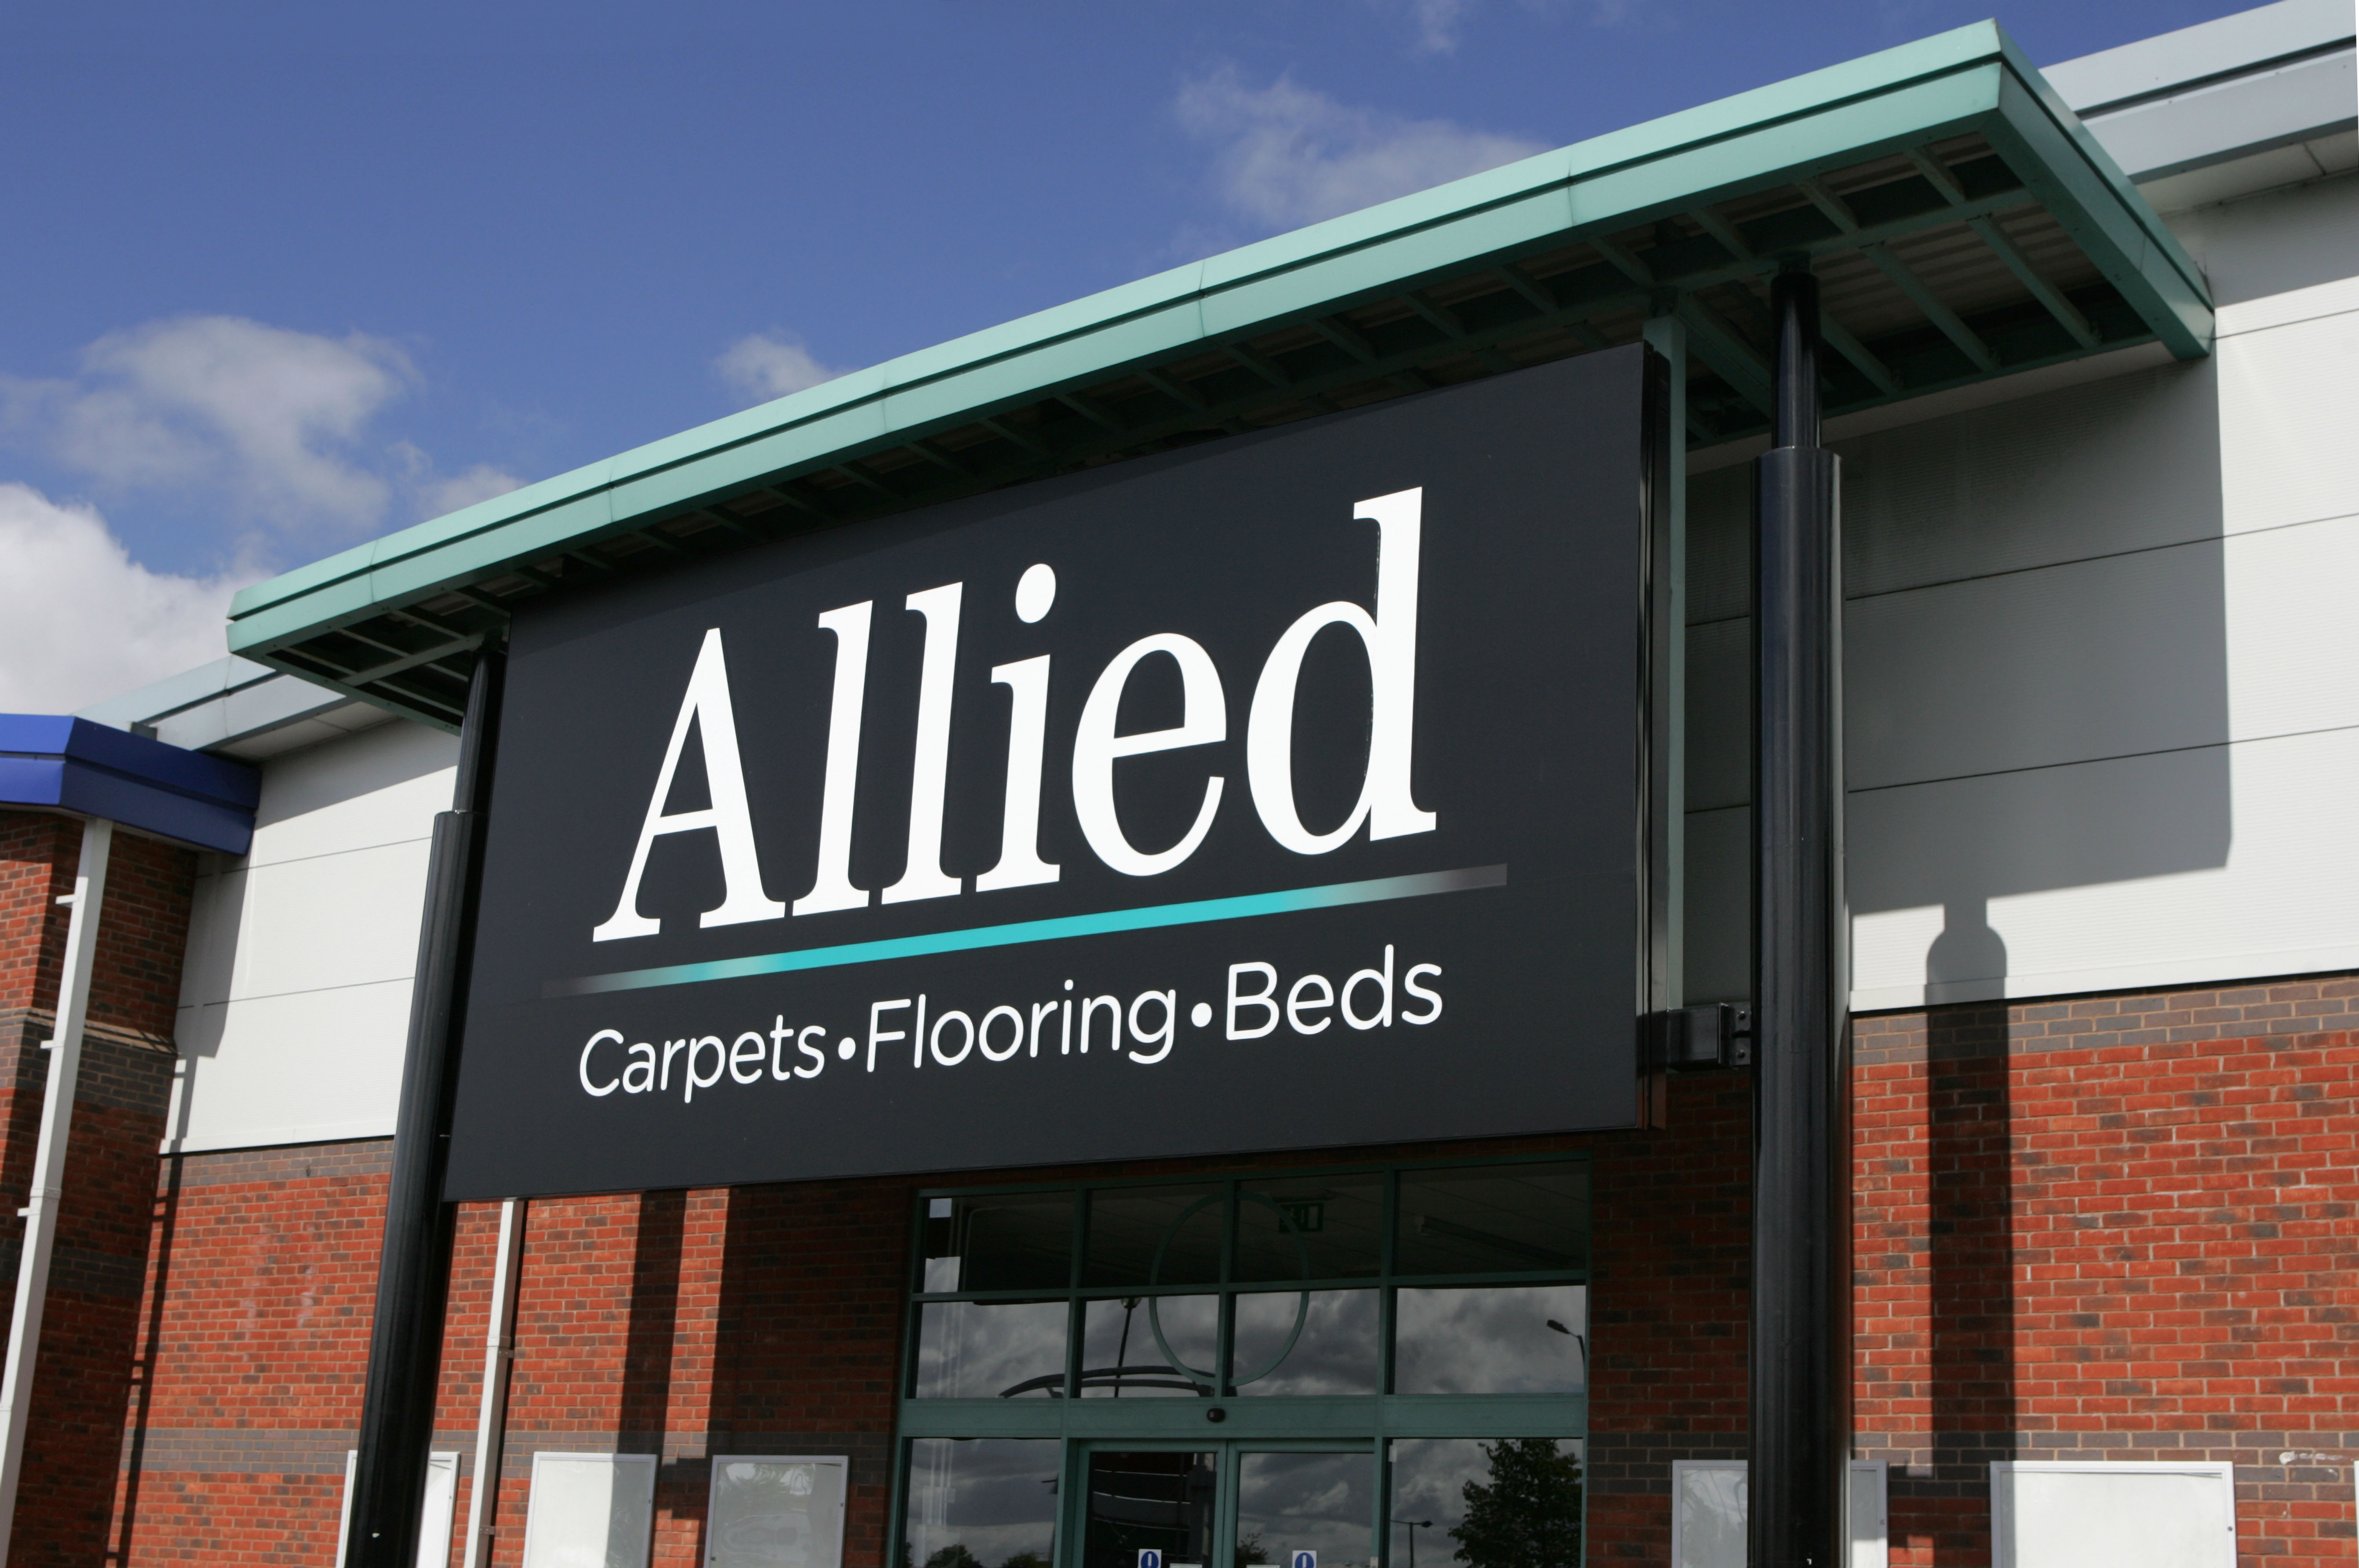 Allied Carpets store